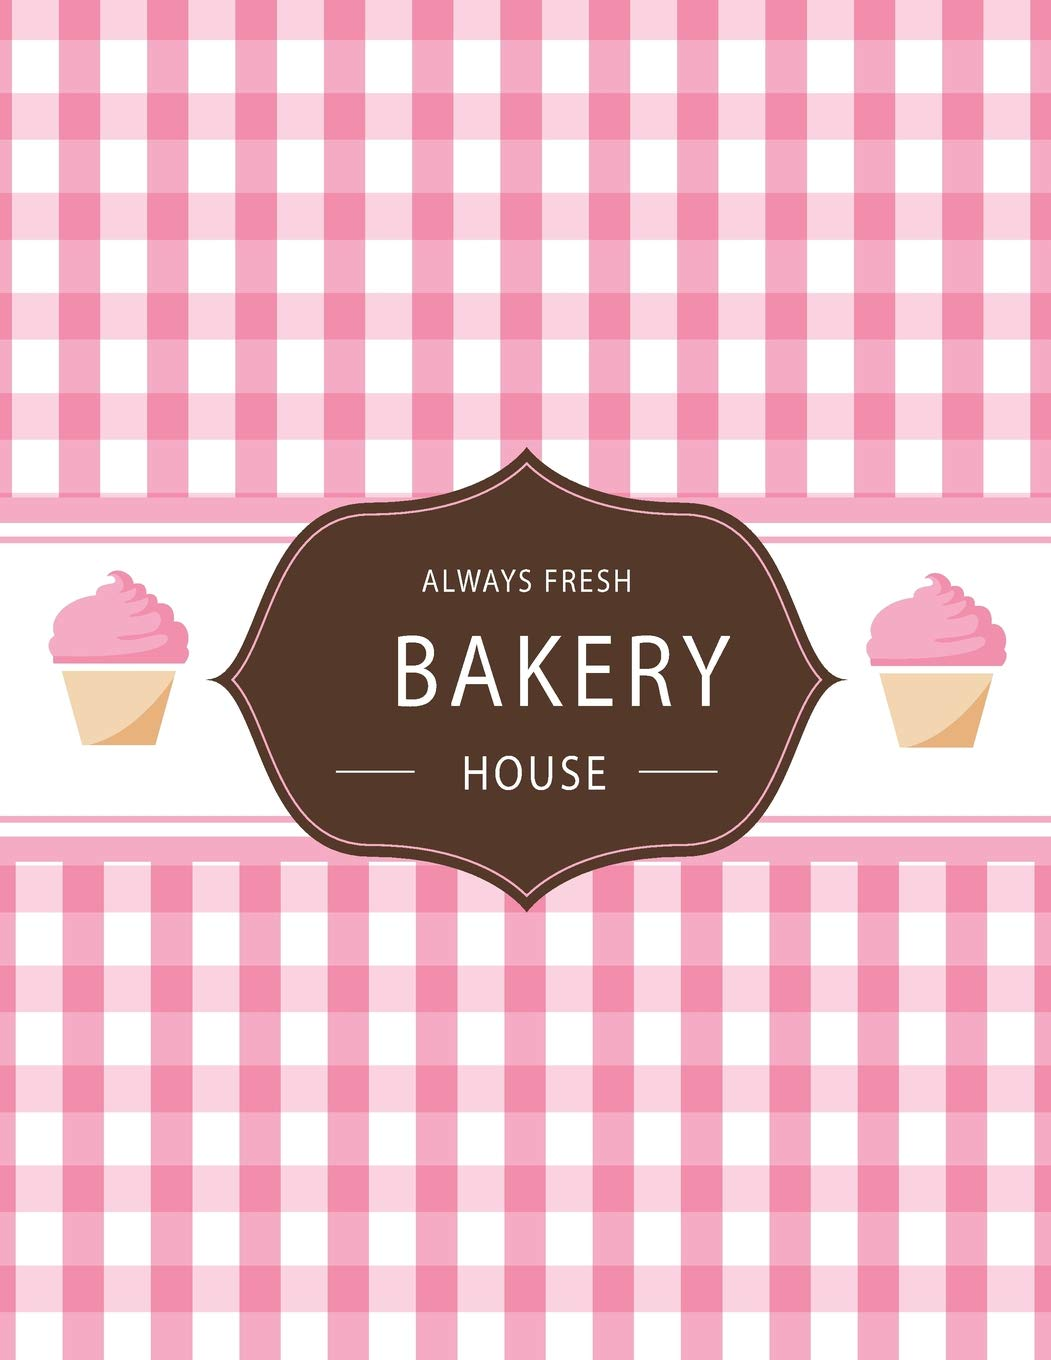 """Always Fresh BAKERY House: Sketchbook Always Fresh BAKERY House Pink color 8.5"""" X 11"""", Personalized Artist Sketchbook: 110 pages, Sketching, Drawing and Creative Doodling. White paper. (Volume 29)"""